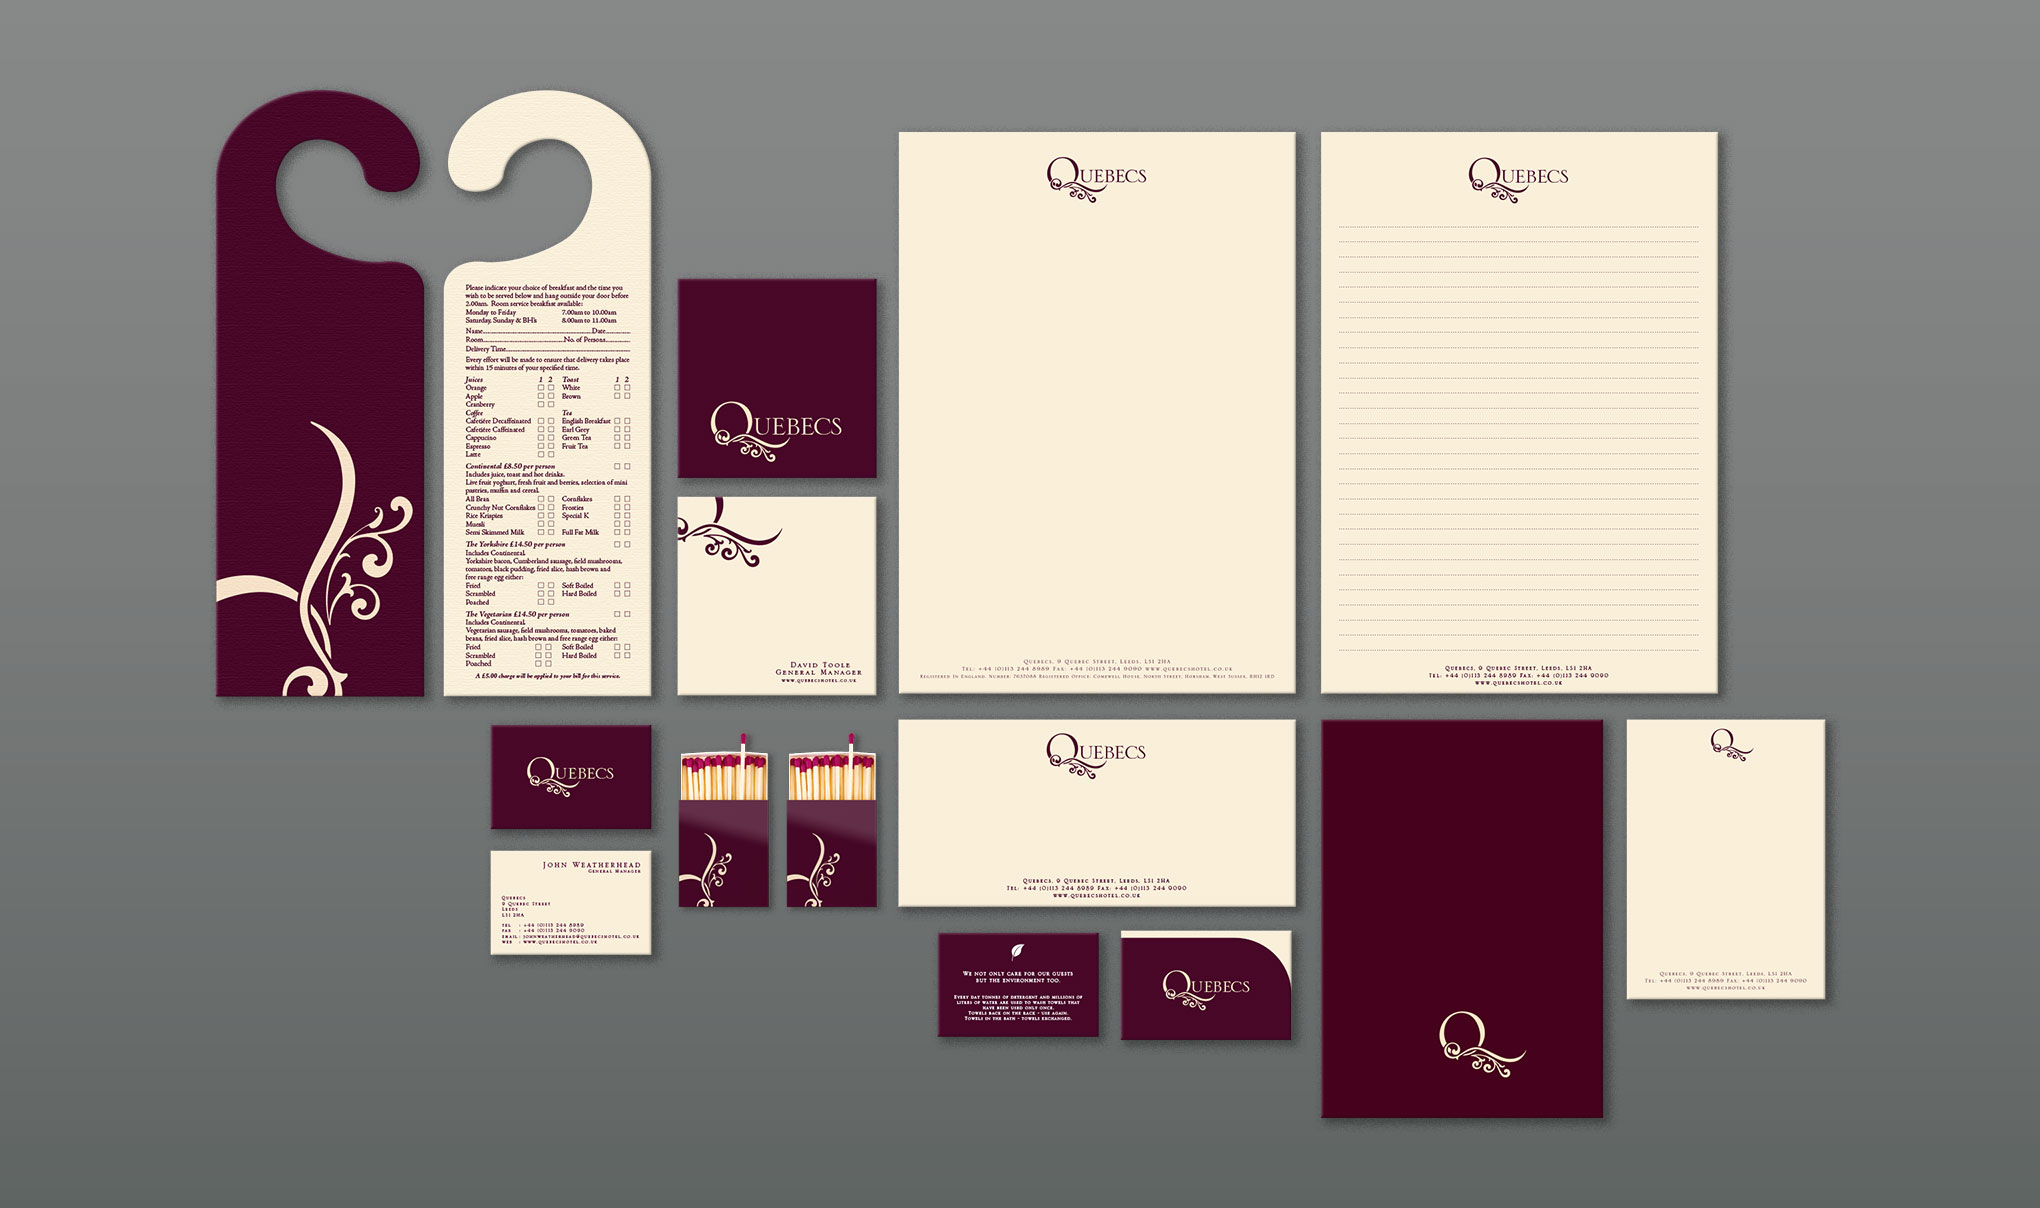 Brand identity for Quebecs Hotel, Leeds. Image shows a selection of stationery and marketing materials. Created by brand design agency Flipflop Design